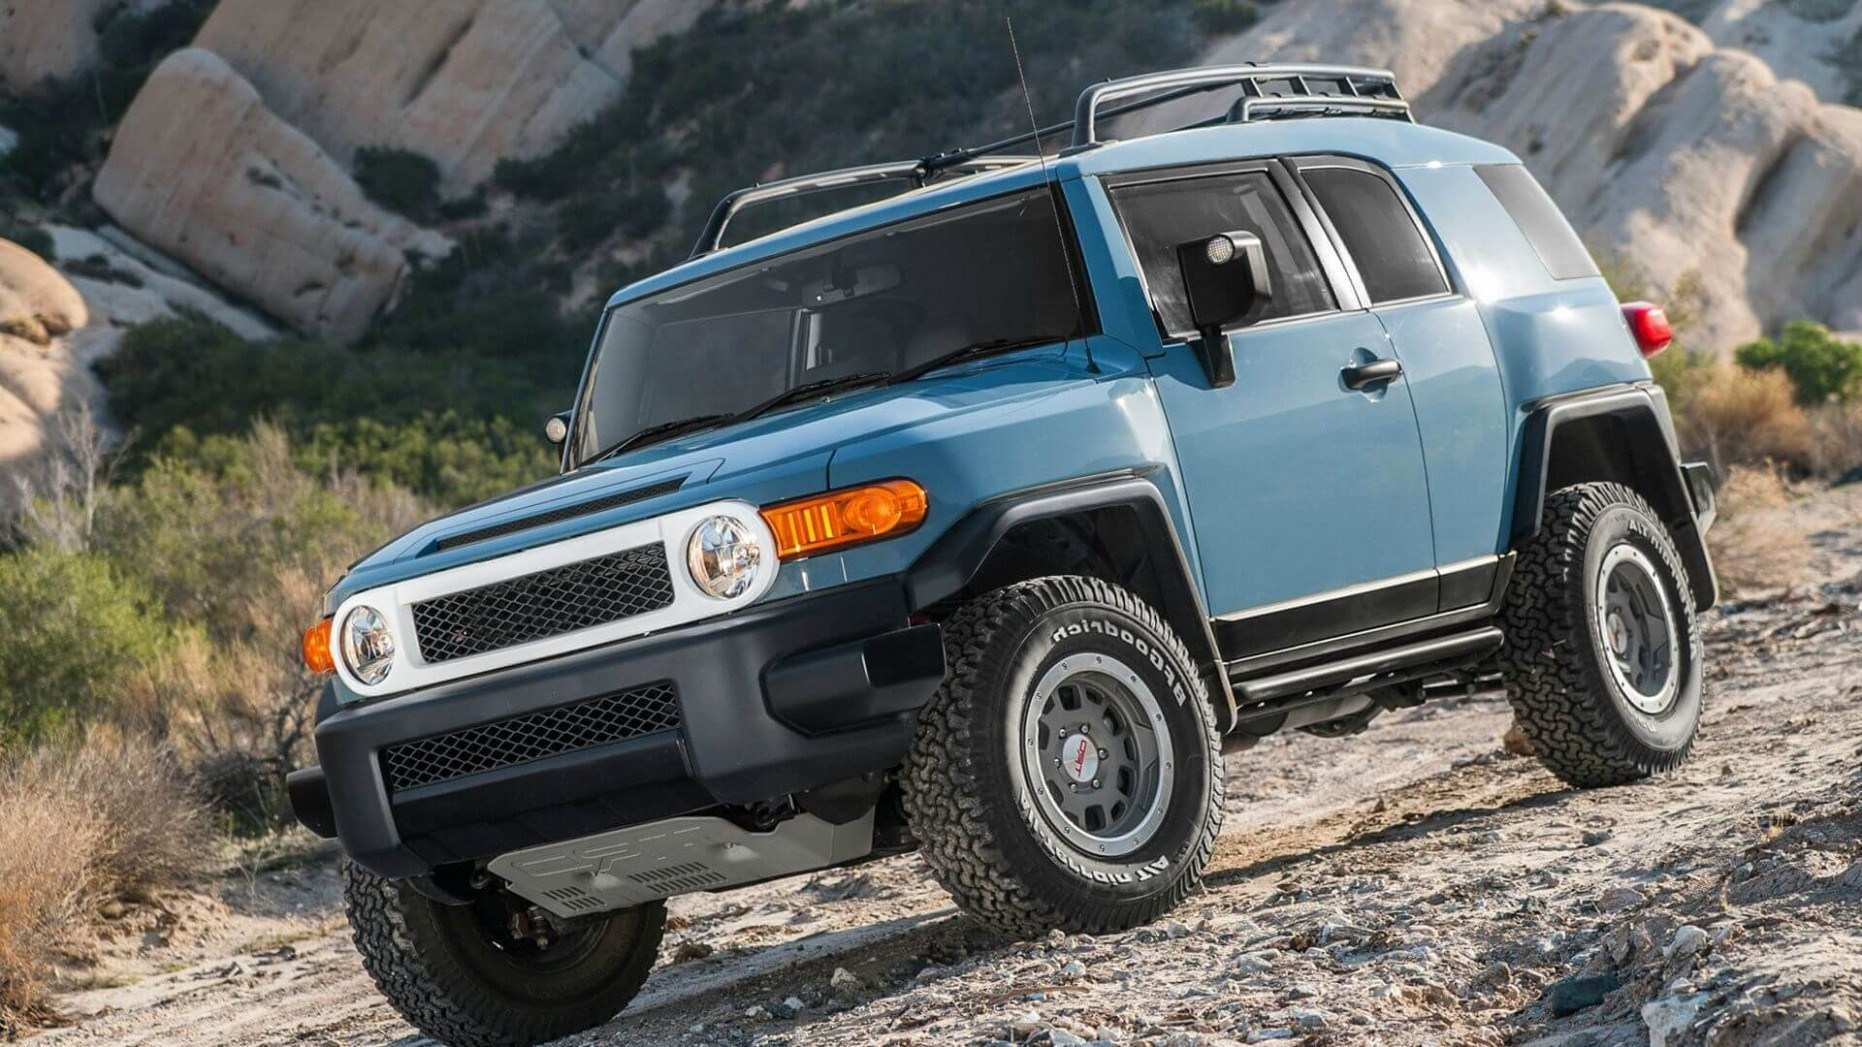 81 Best Review 2020 Toyota Suv Engine with 2020 Toyota Suv